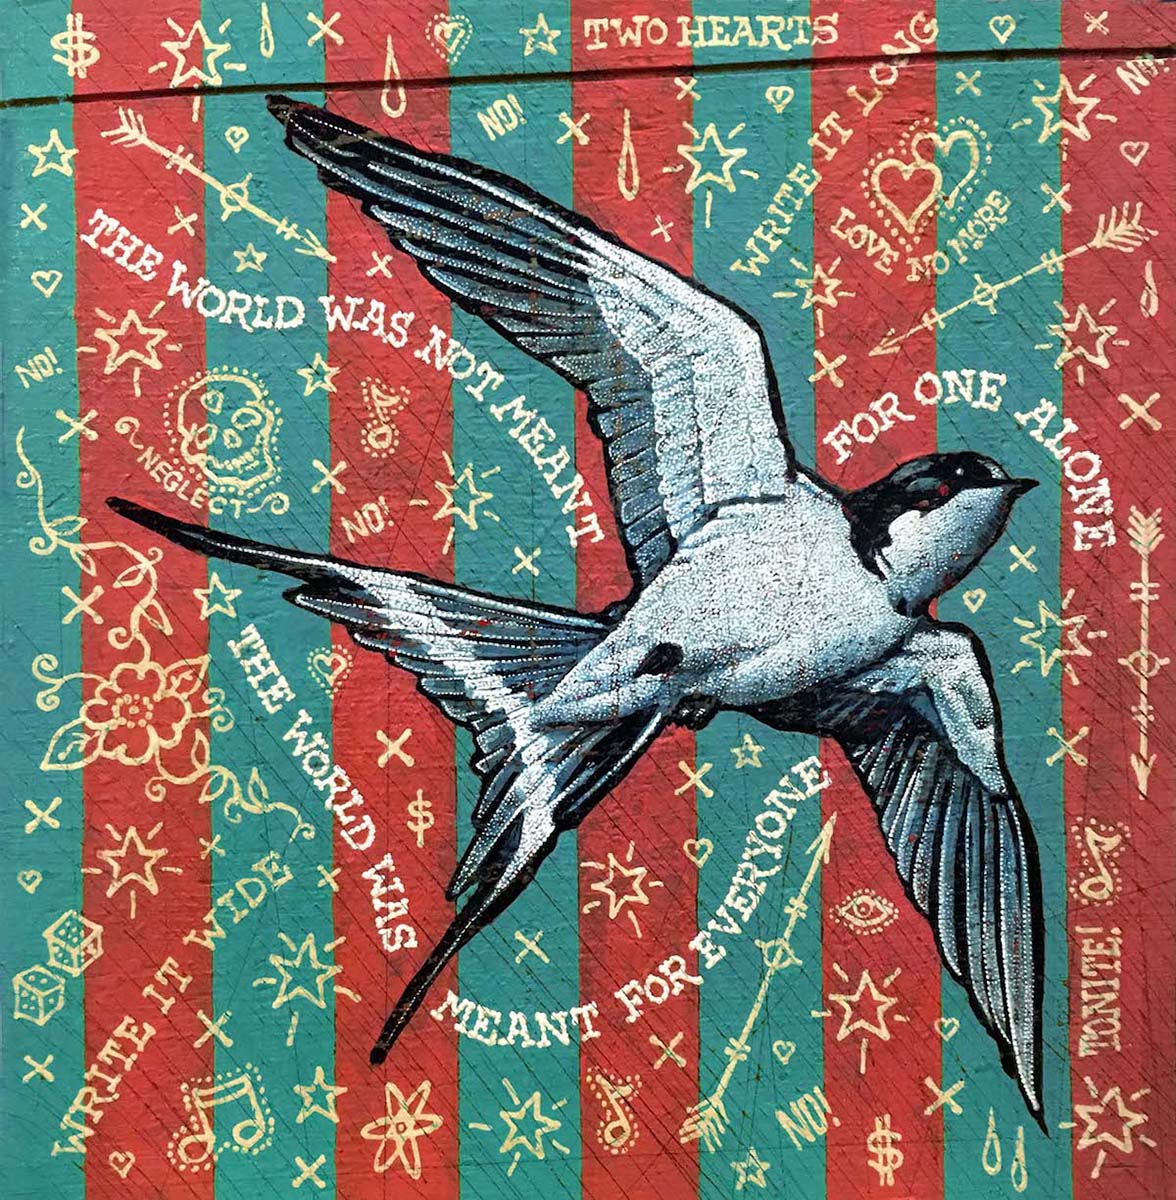 Like A Swallow - Jon Langford - Yard Dog Art